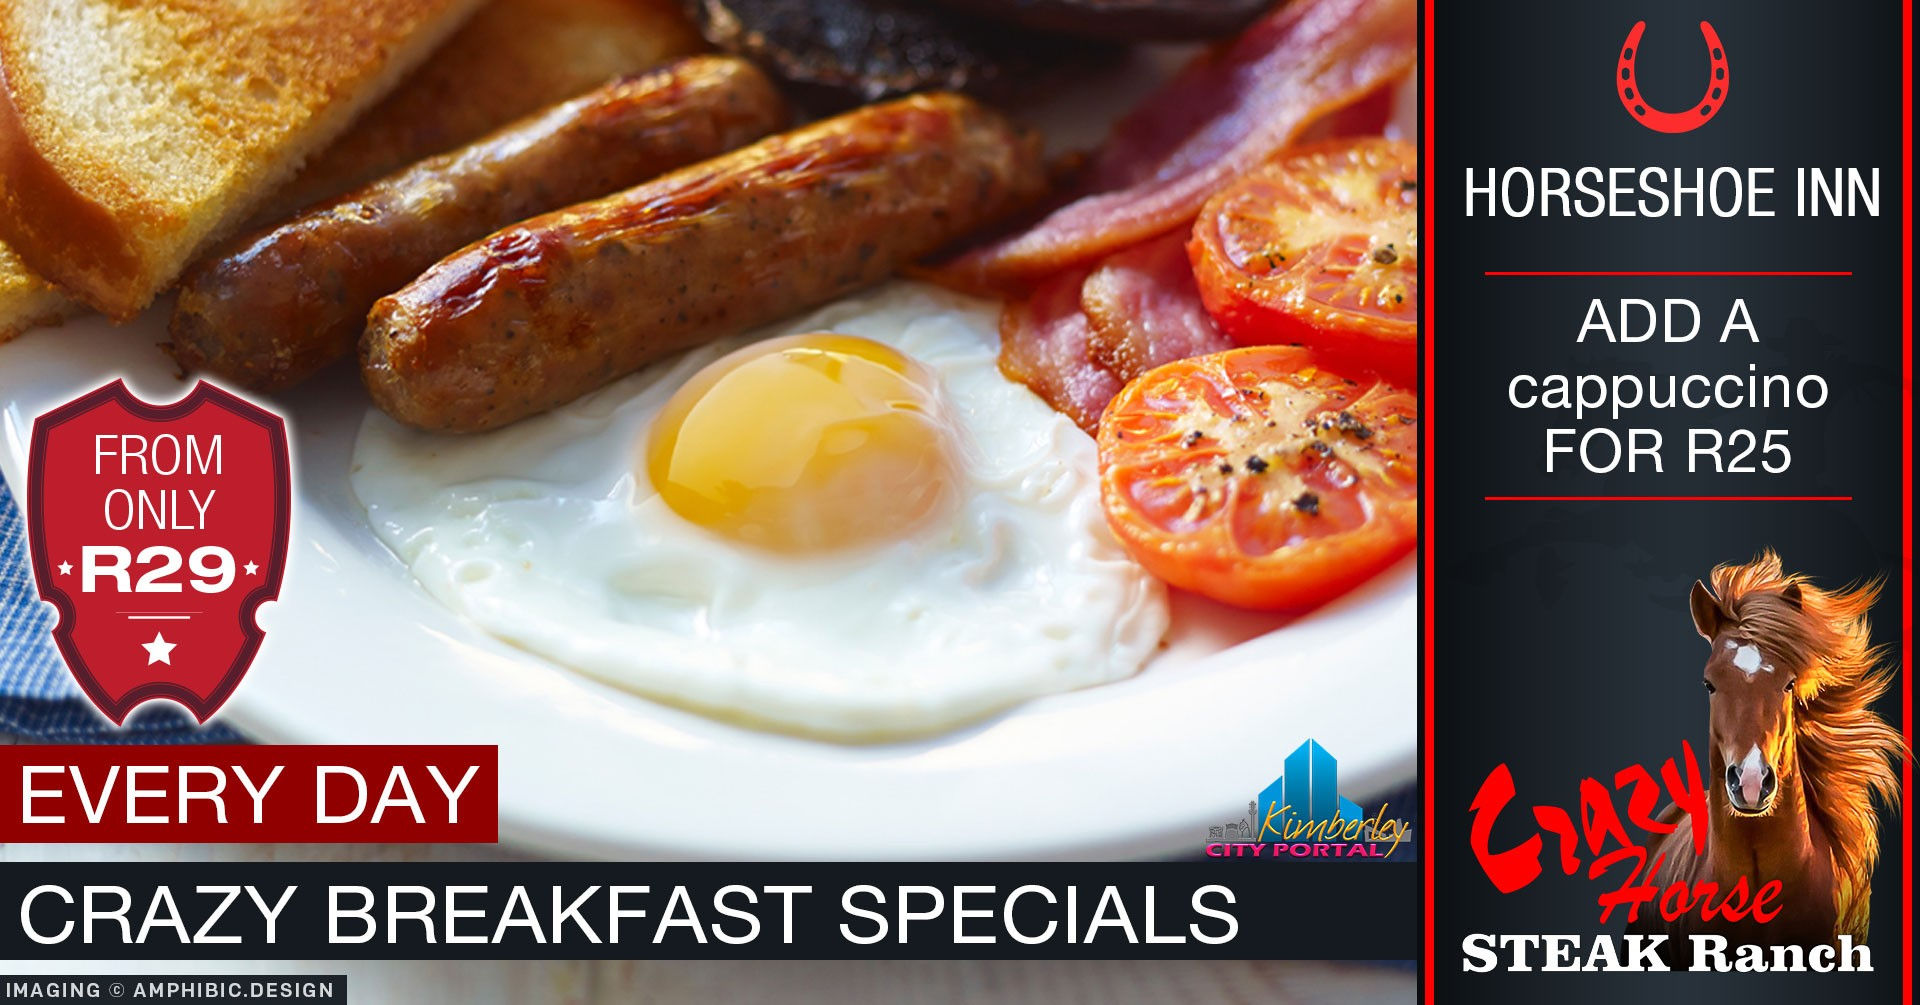 Crazy_Horse_Steak_Ranch-KCP-SP-FI-Daily_Breafast_Specials